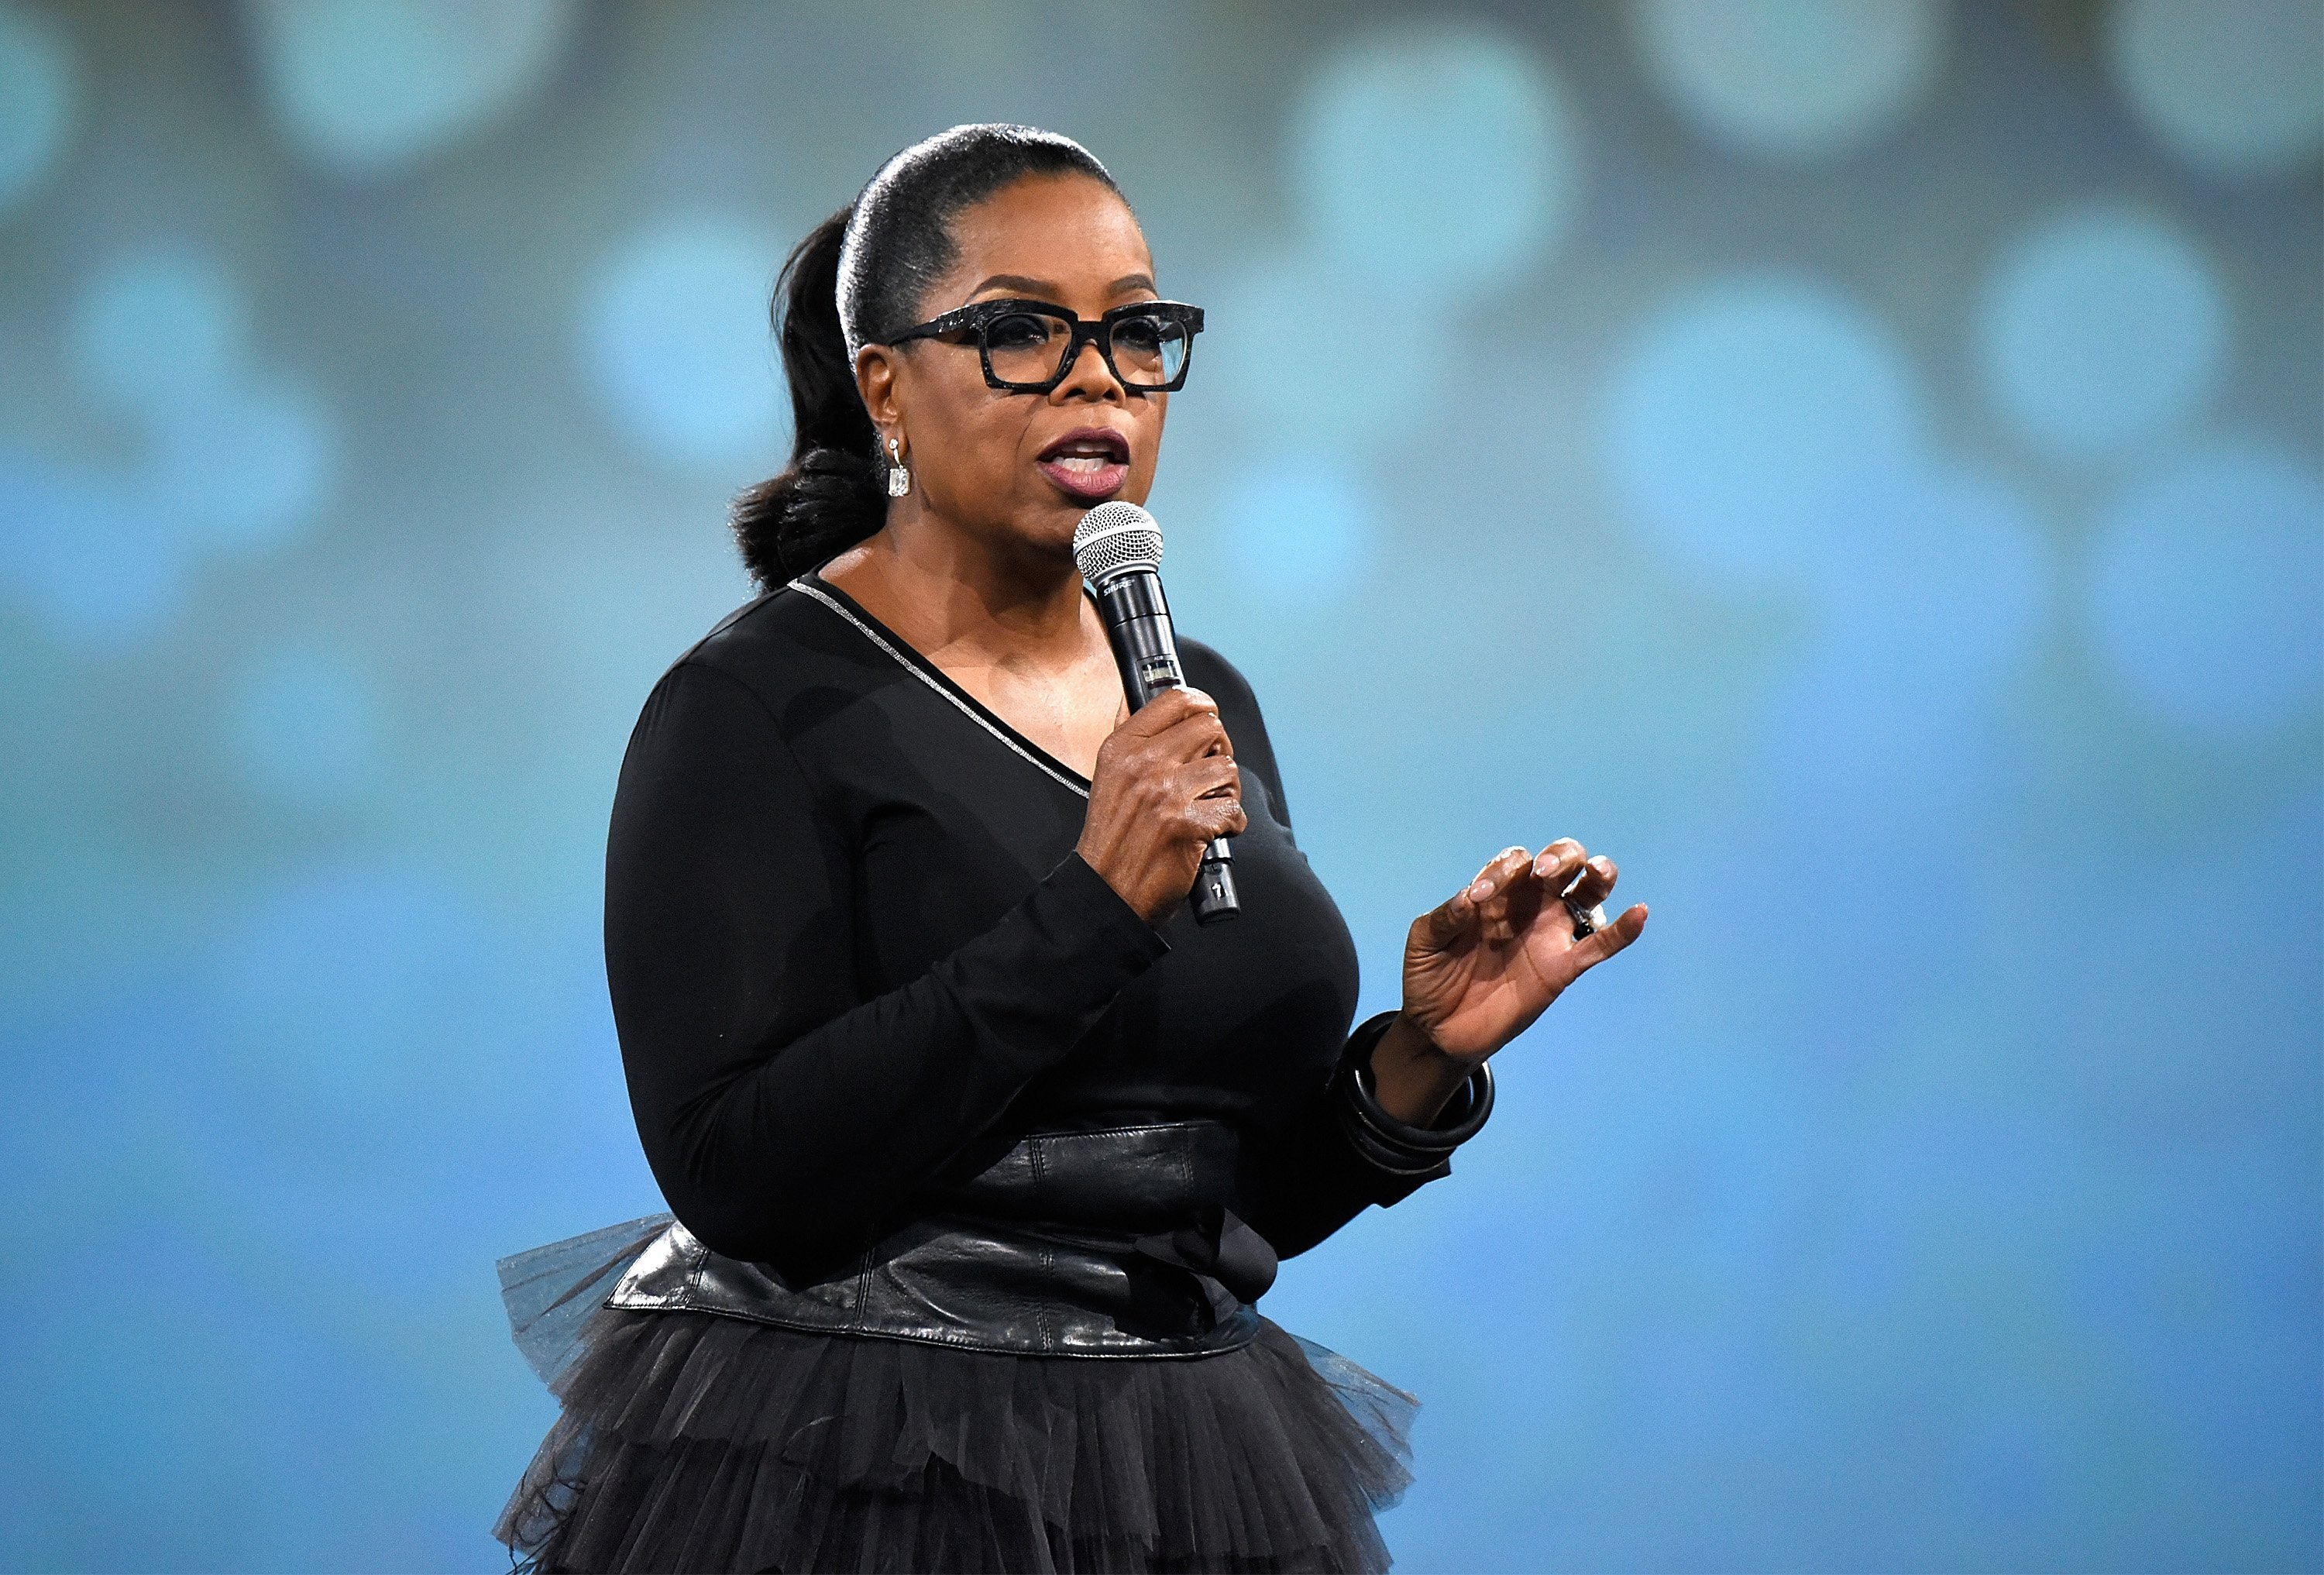 Oprah Winfrey at The Robin Hood Foundation's 2018 benefit in New York City on May 14, 2018 | Photo: Getty Images